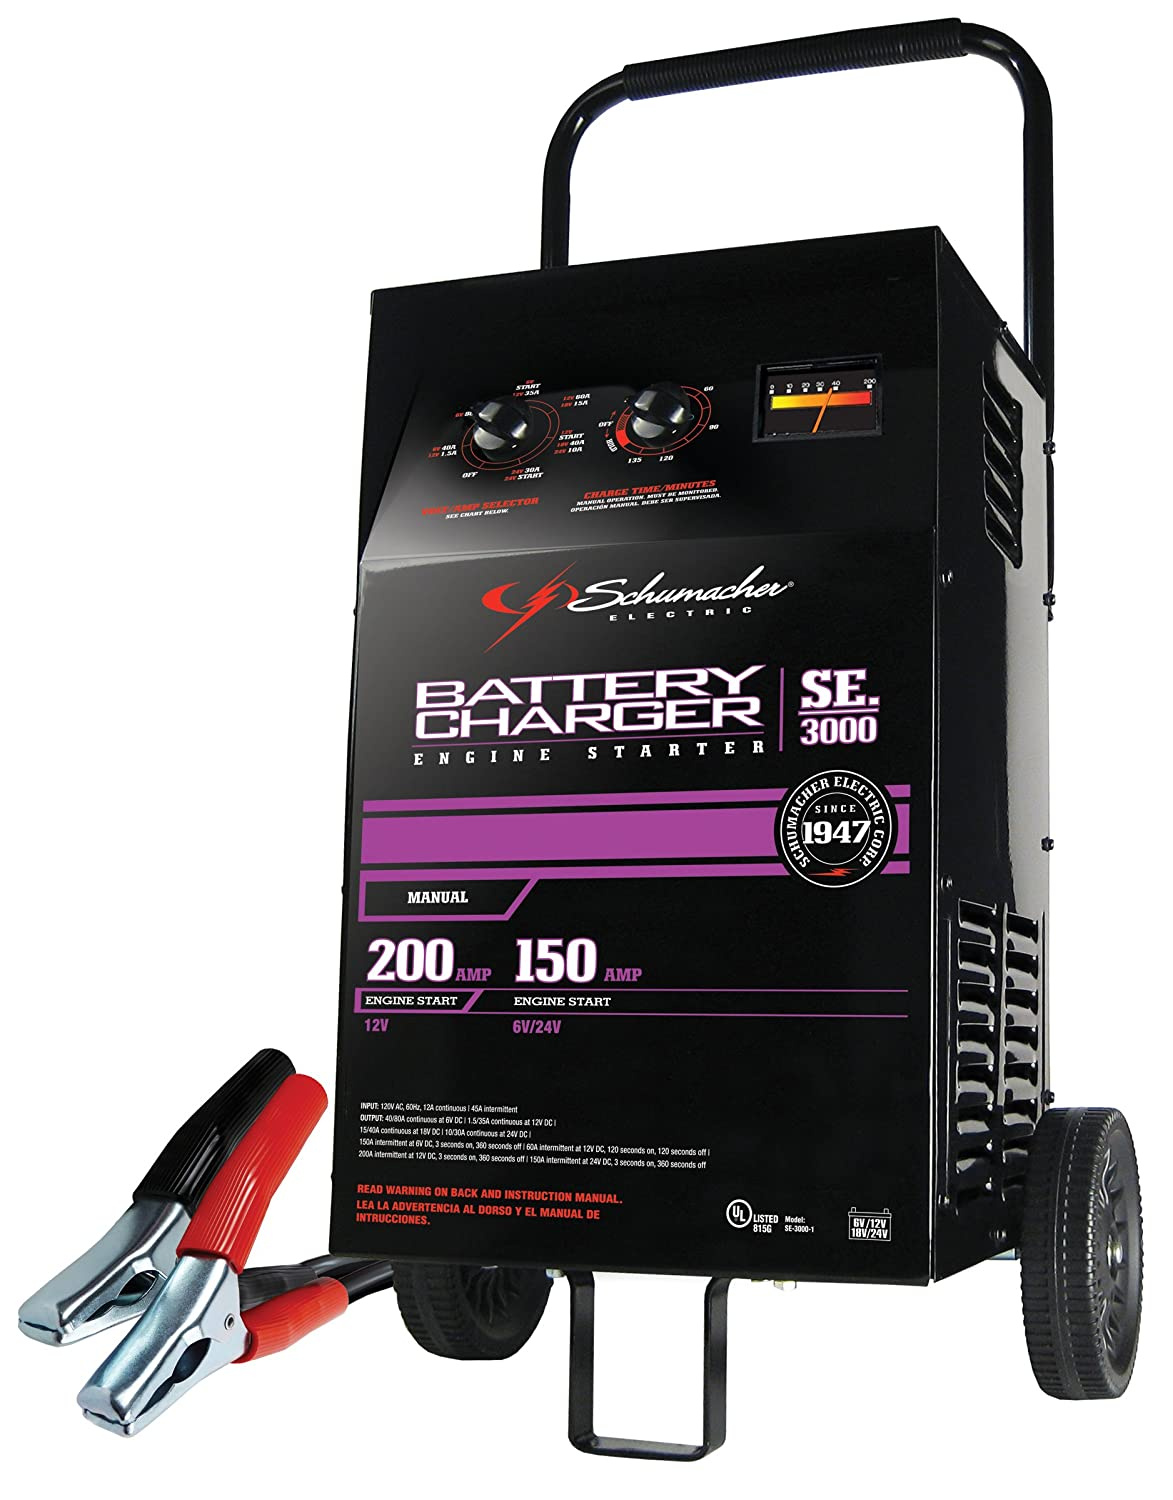 Amazon.com: Schumacher SE-3000 1.5-200 Amp Manual Fleet Battery Charger:  Automotive